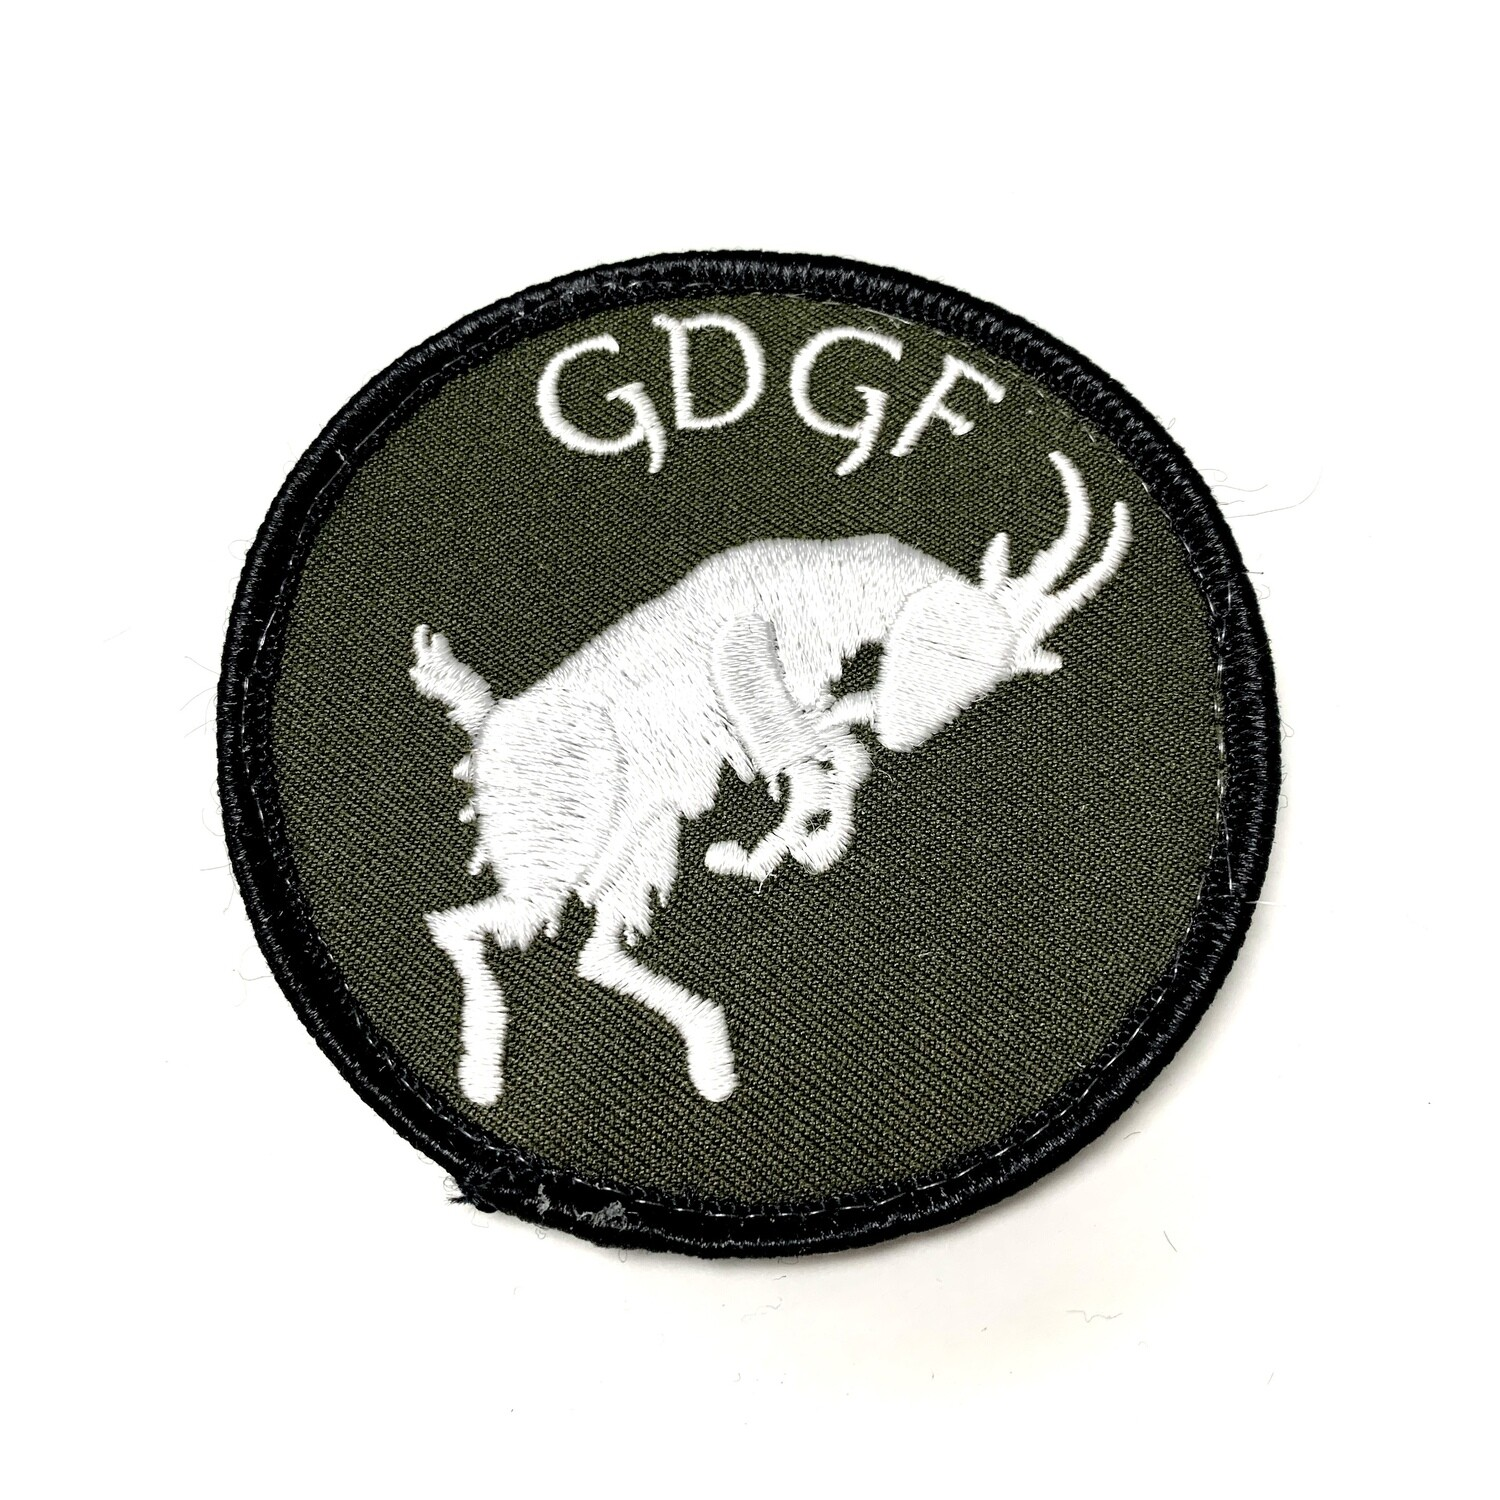 Goat Don't... Patch